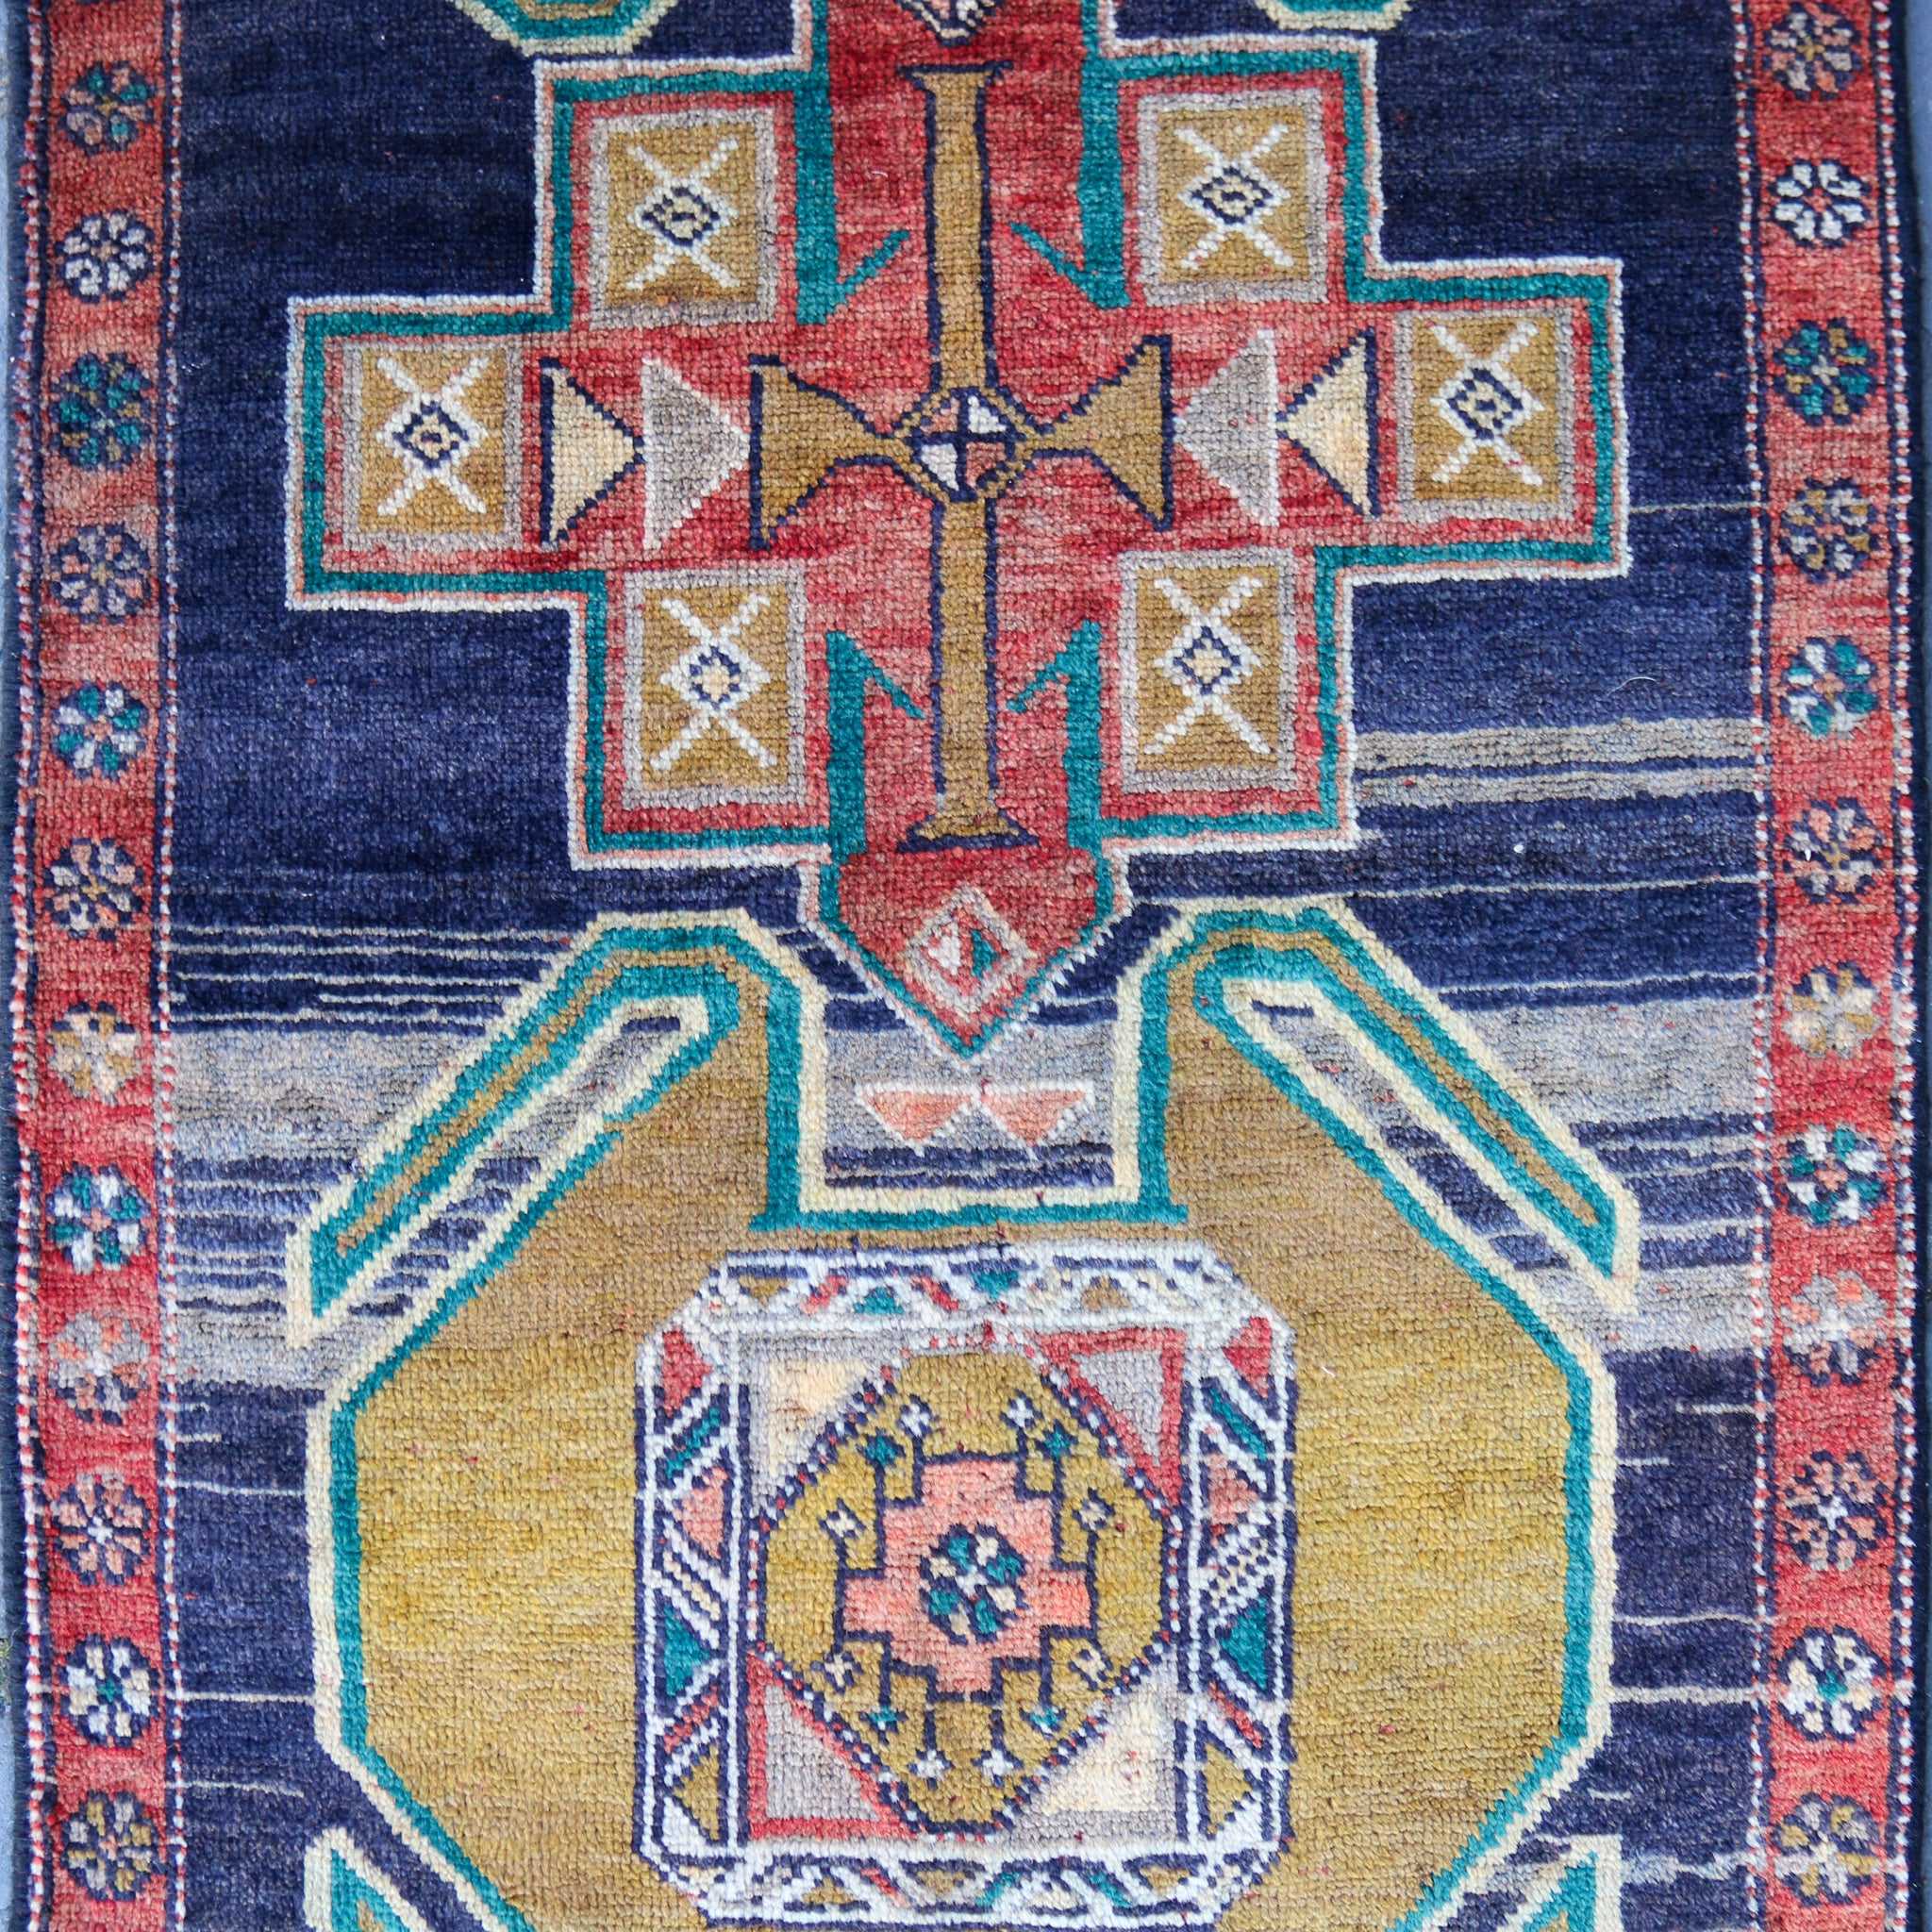 ON HOLD K5754 Handwoven Vintage Rug 2'7x8'4